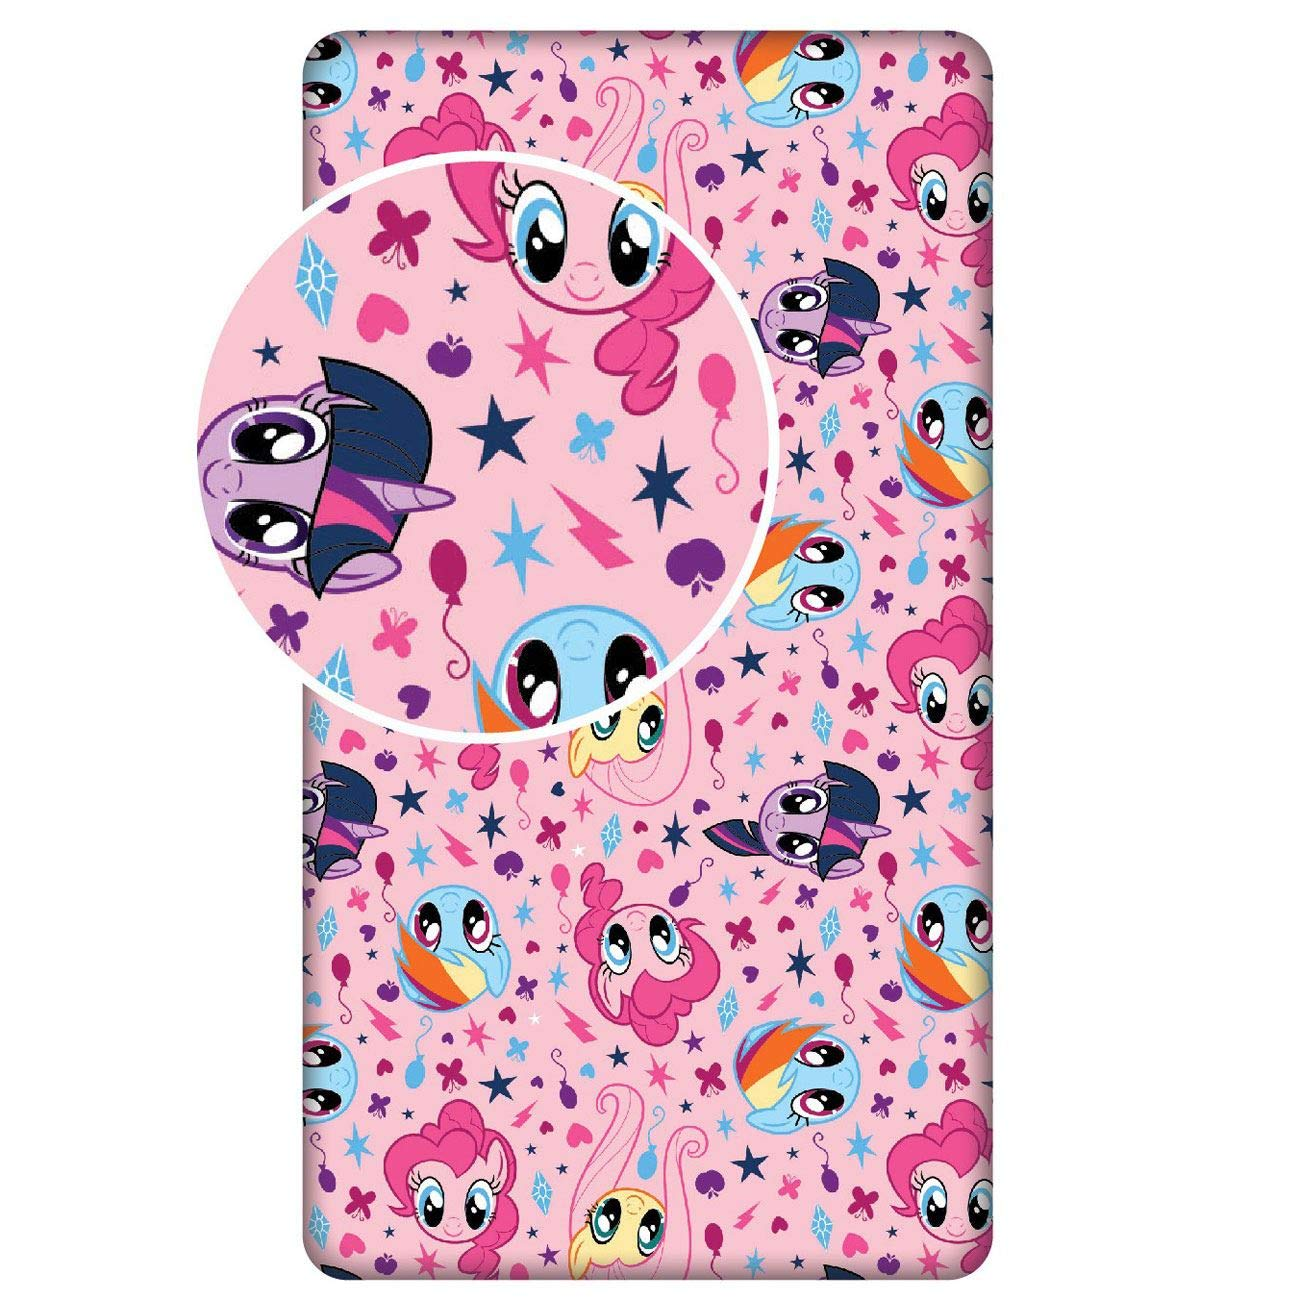 Jerry Fabrics My Little Pony Pink Single Fitted Sheet by Jerry Fabrics